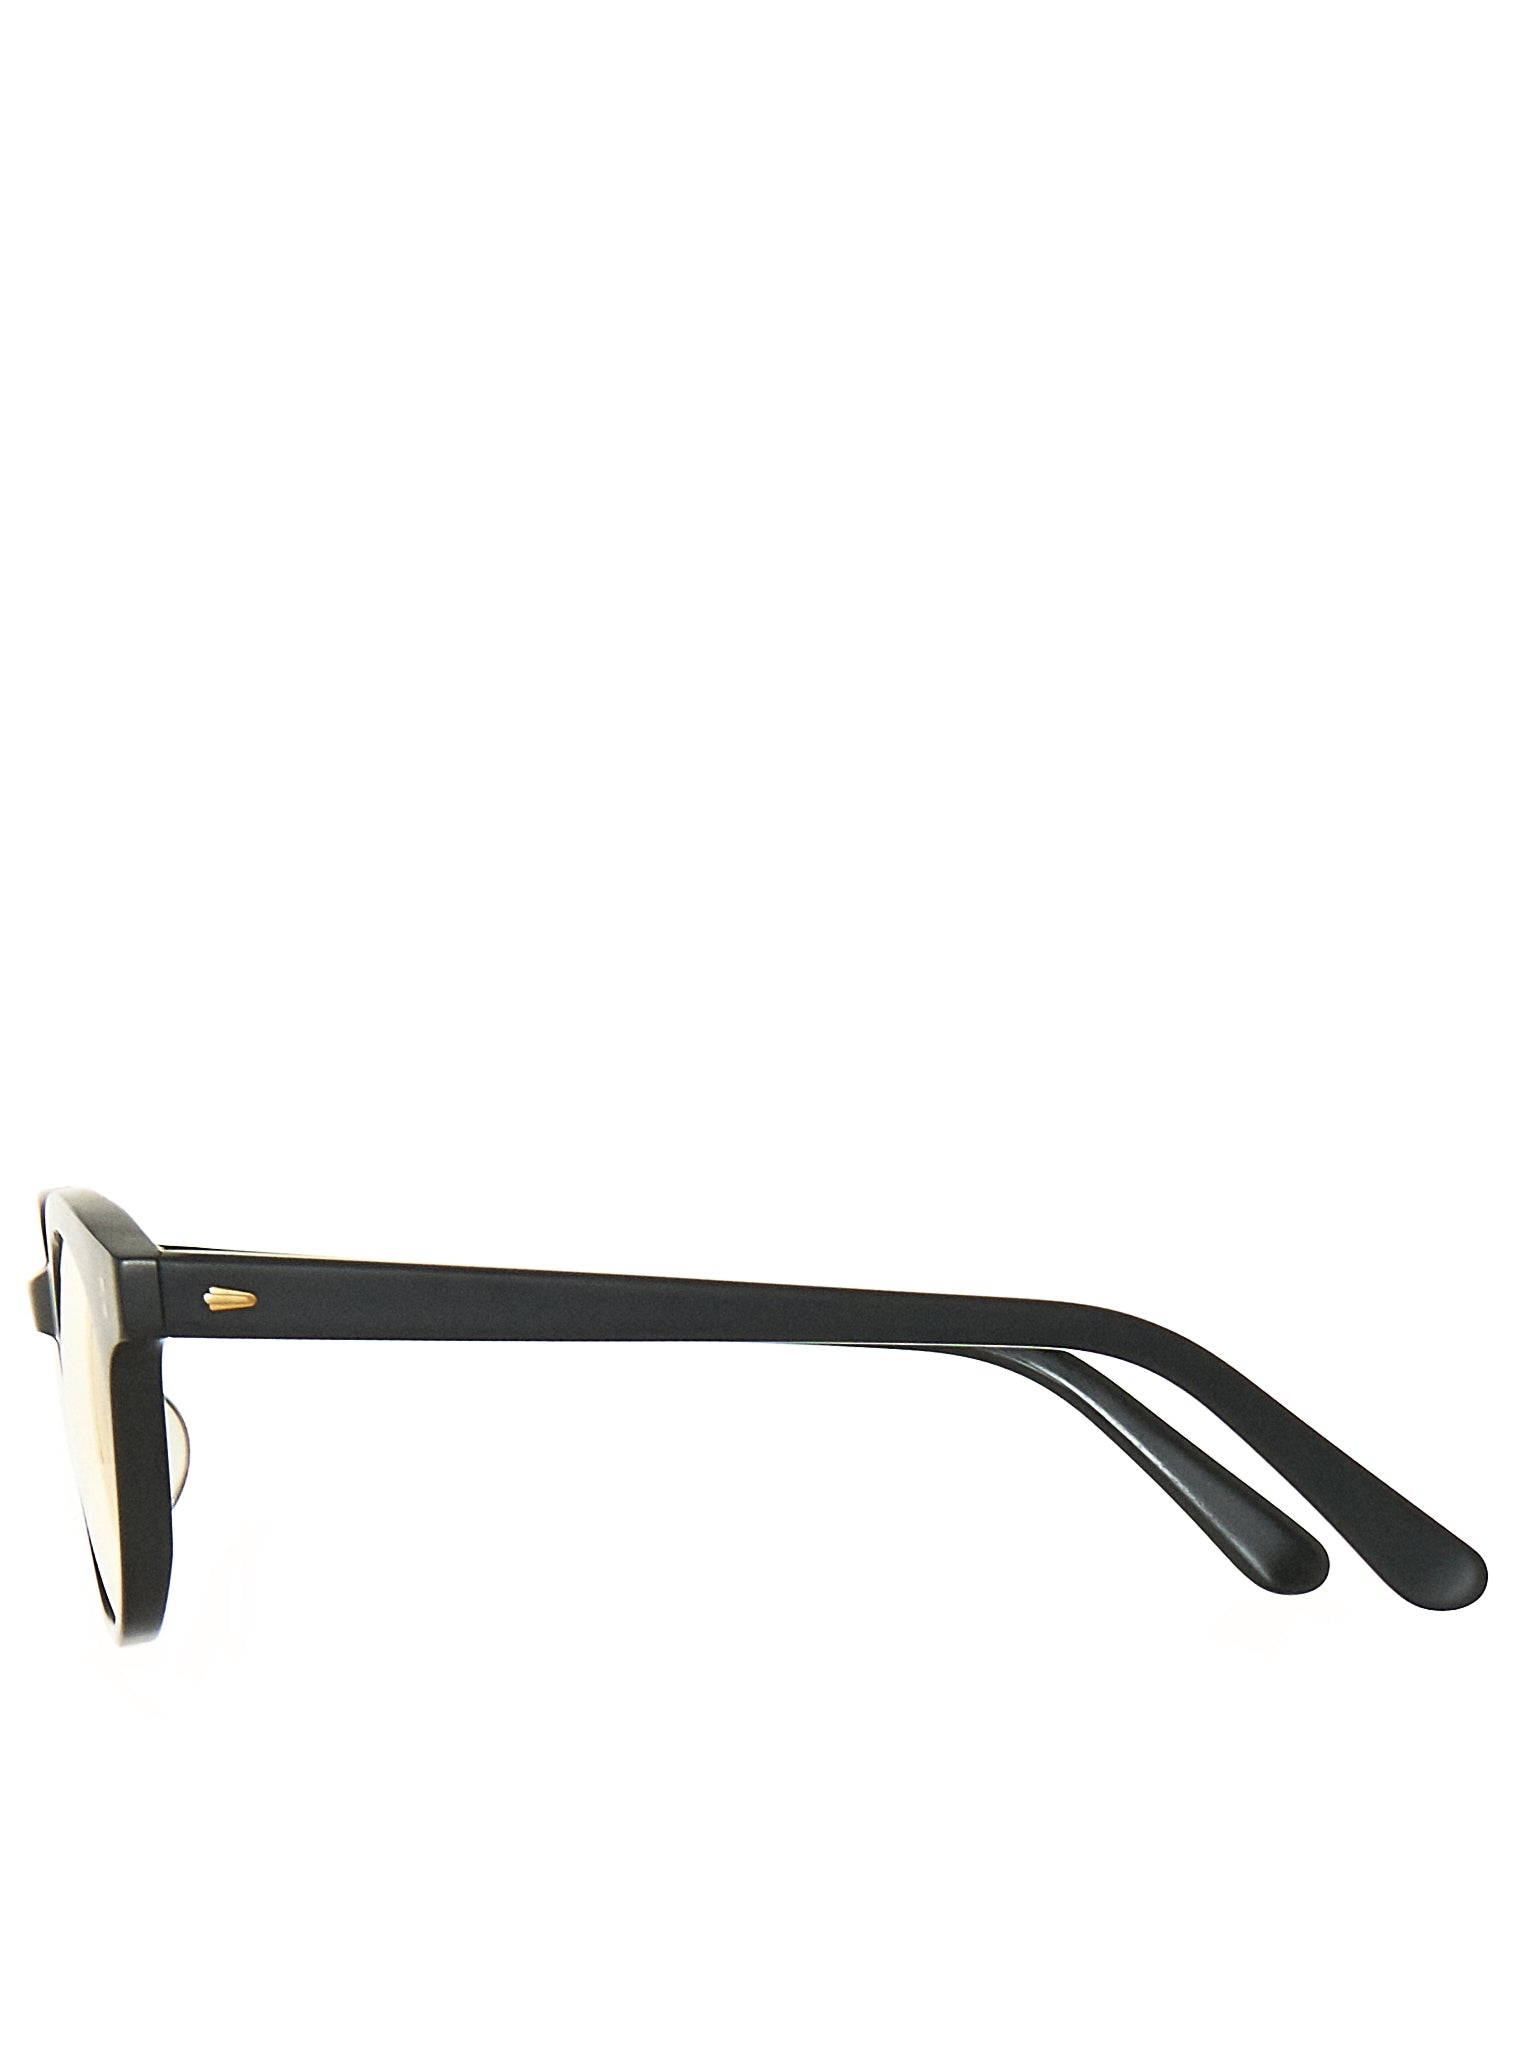 Hakusan Sunglasses - Hlorenzo Back